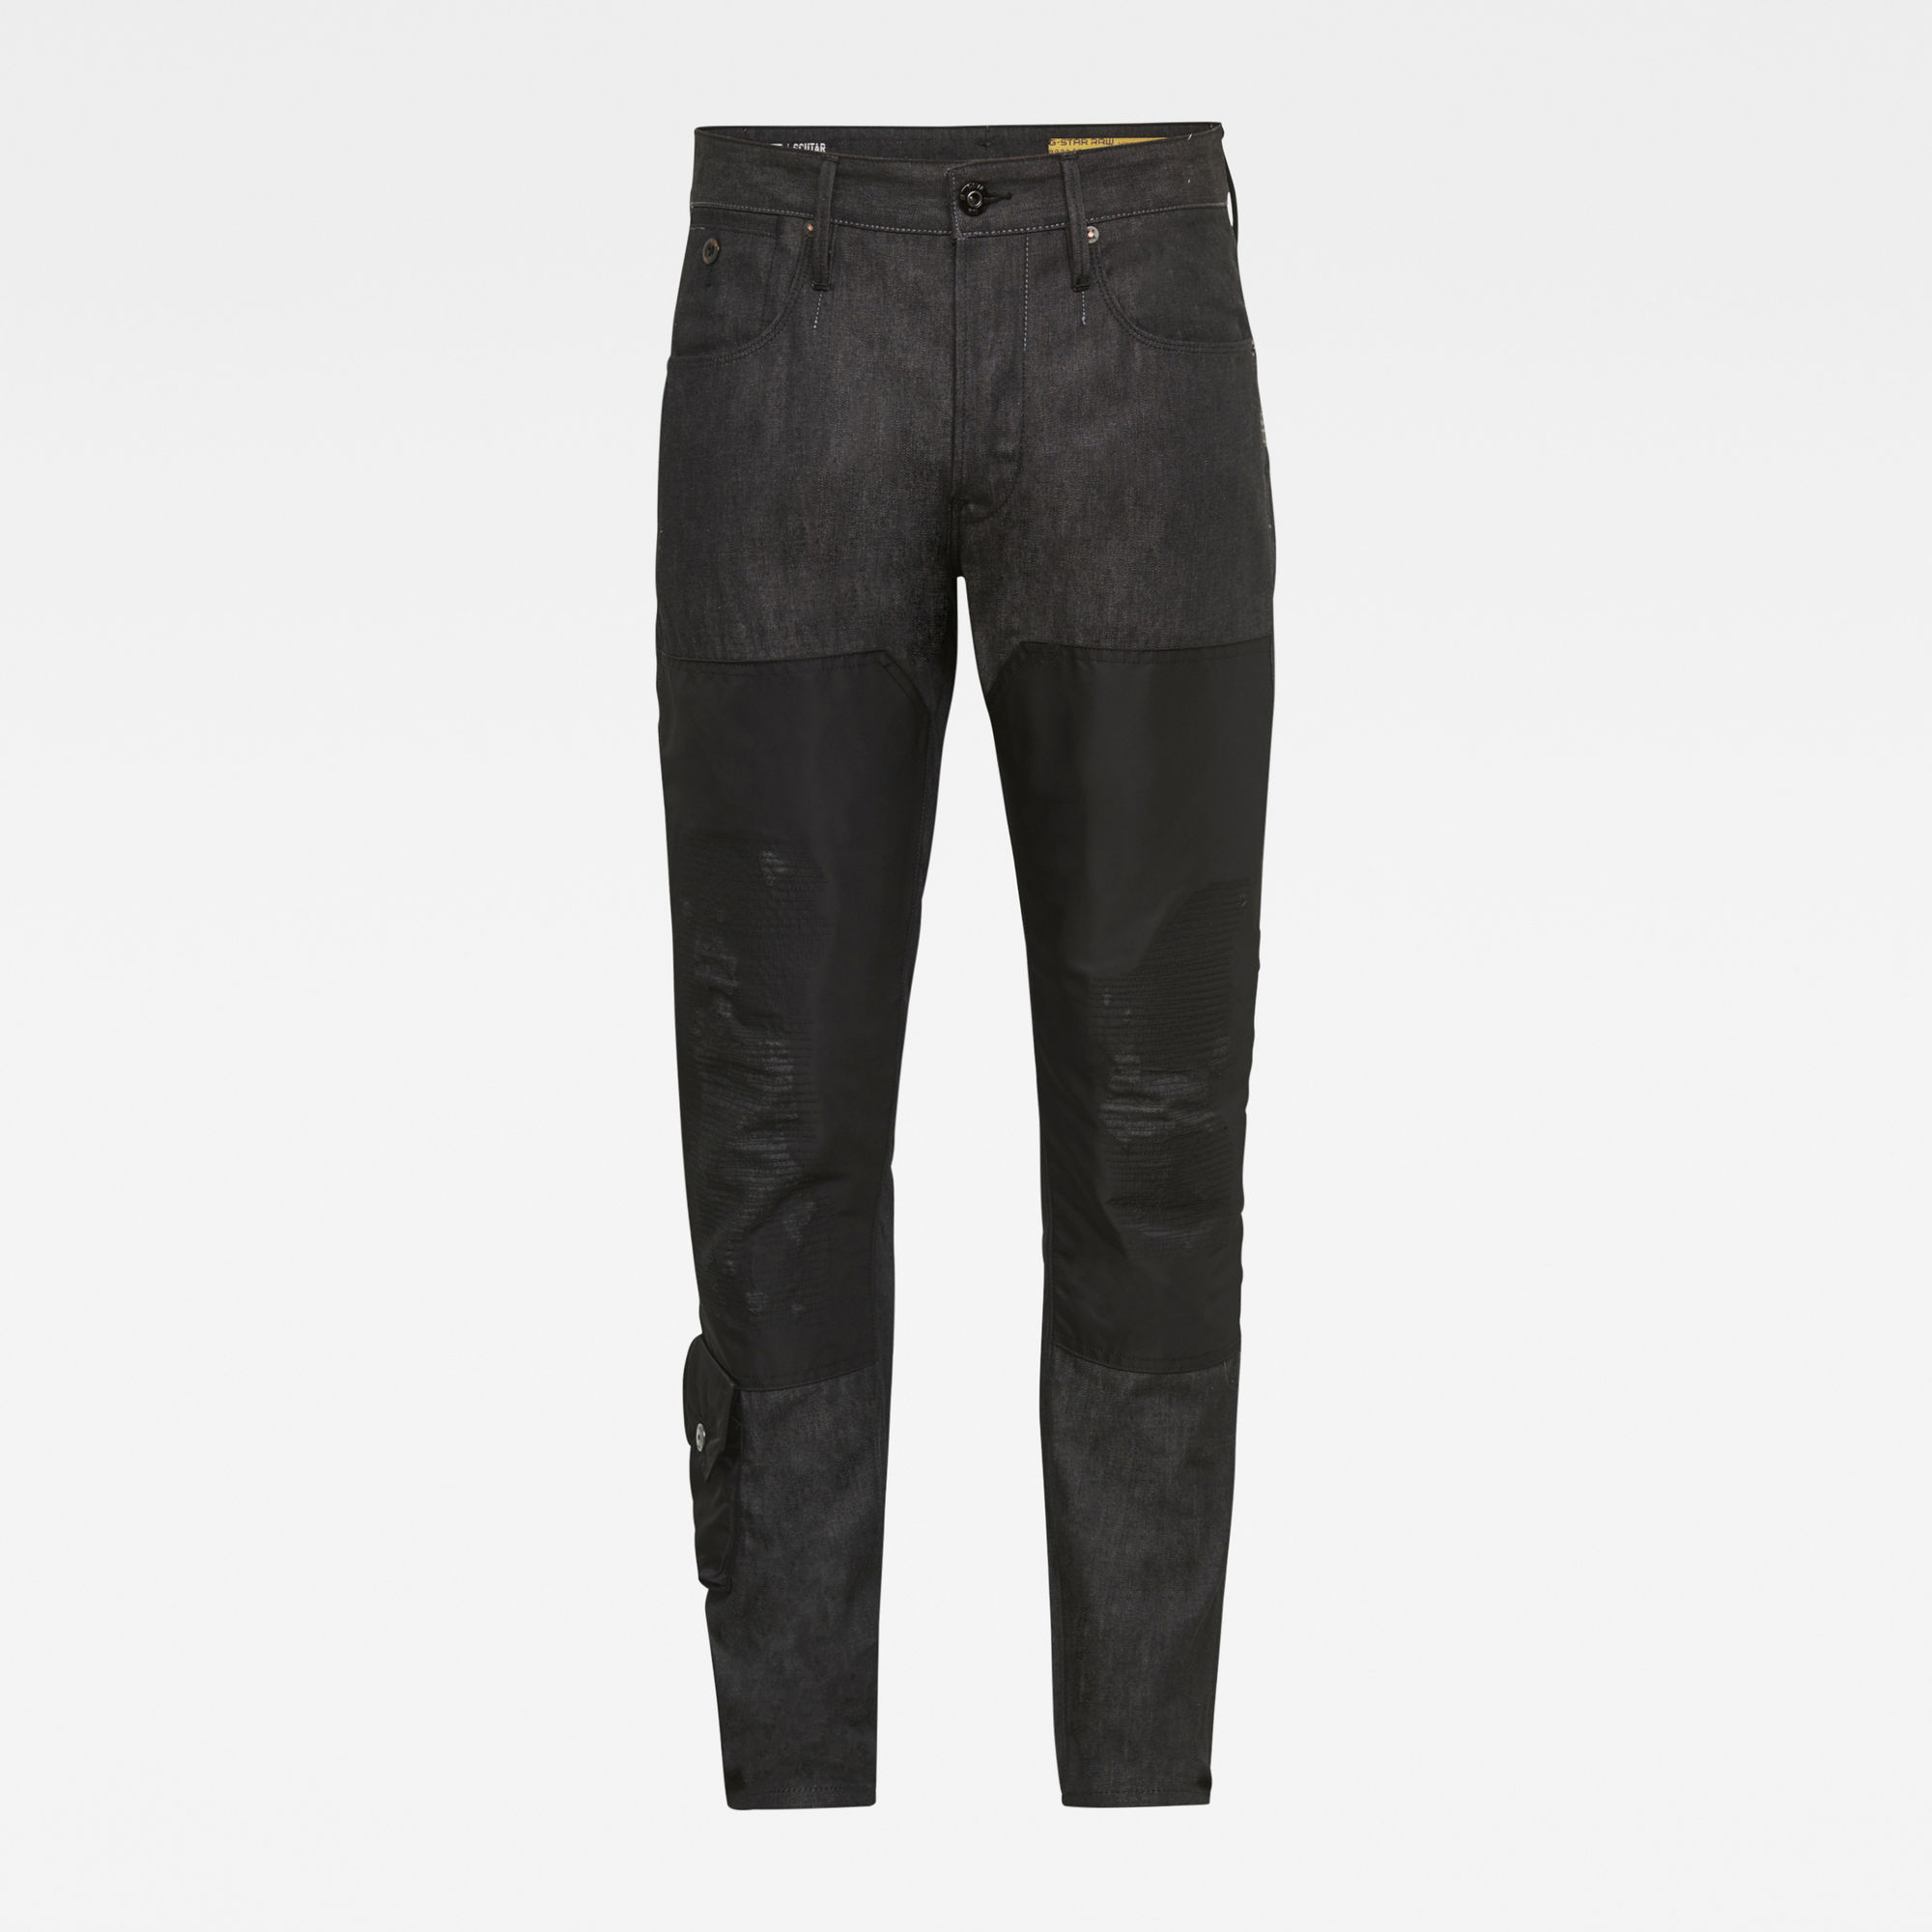 G-Star RAW Heren E Loic Relaxed Tapered PM Jeans Zwart